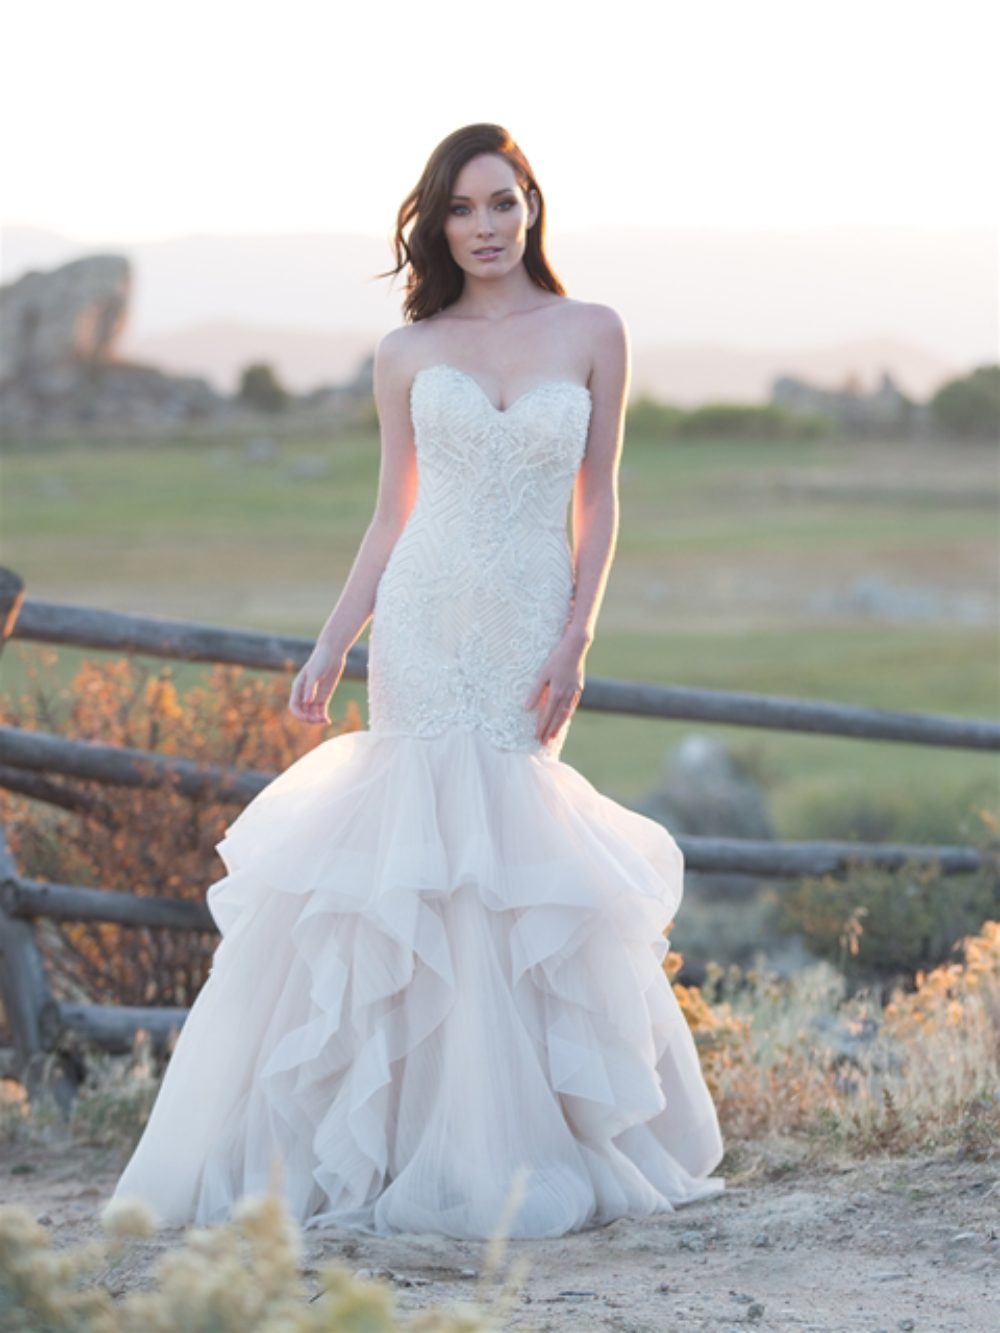 Allure and Allure Couture Wedding Dresses at Precious Memories